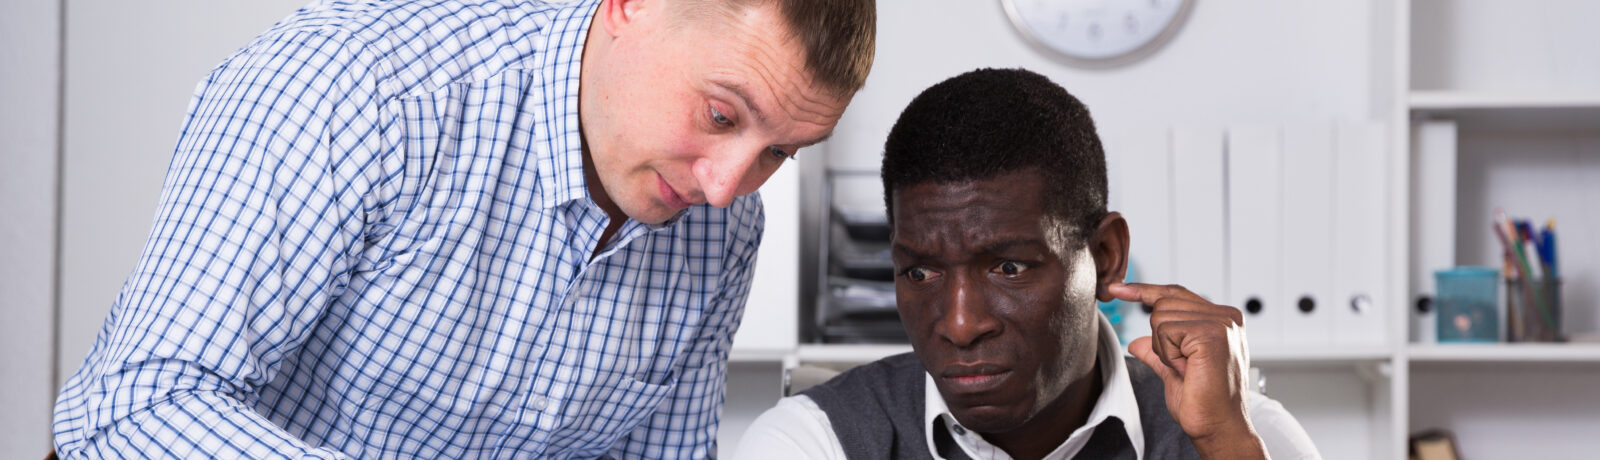 Employee looking worried as his coworker shows him something on a piece of paper.